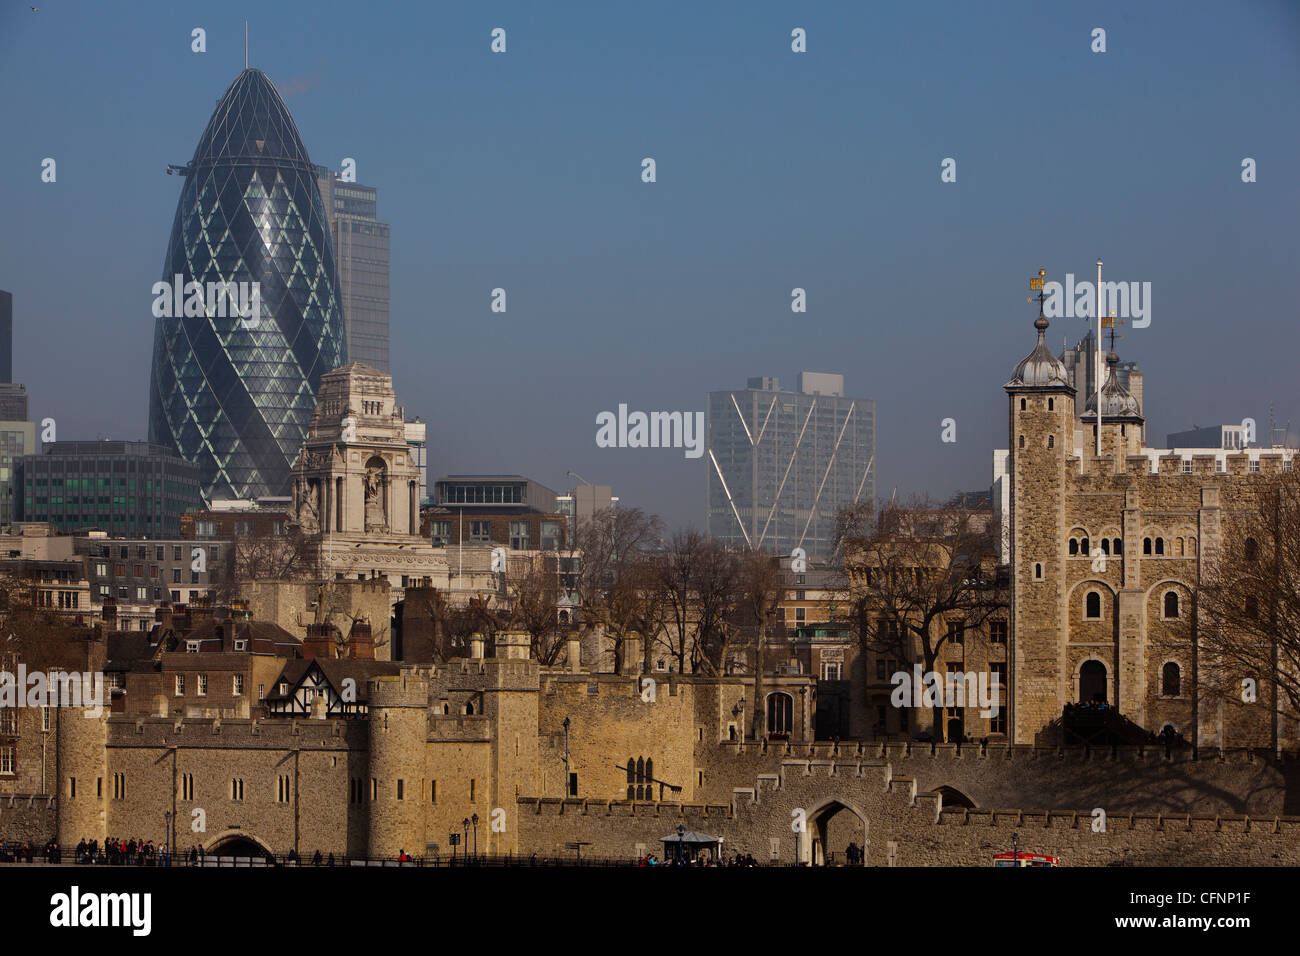 View of the Tower of London and the Gherkin on a misty morning in London - Stock Image